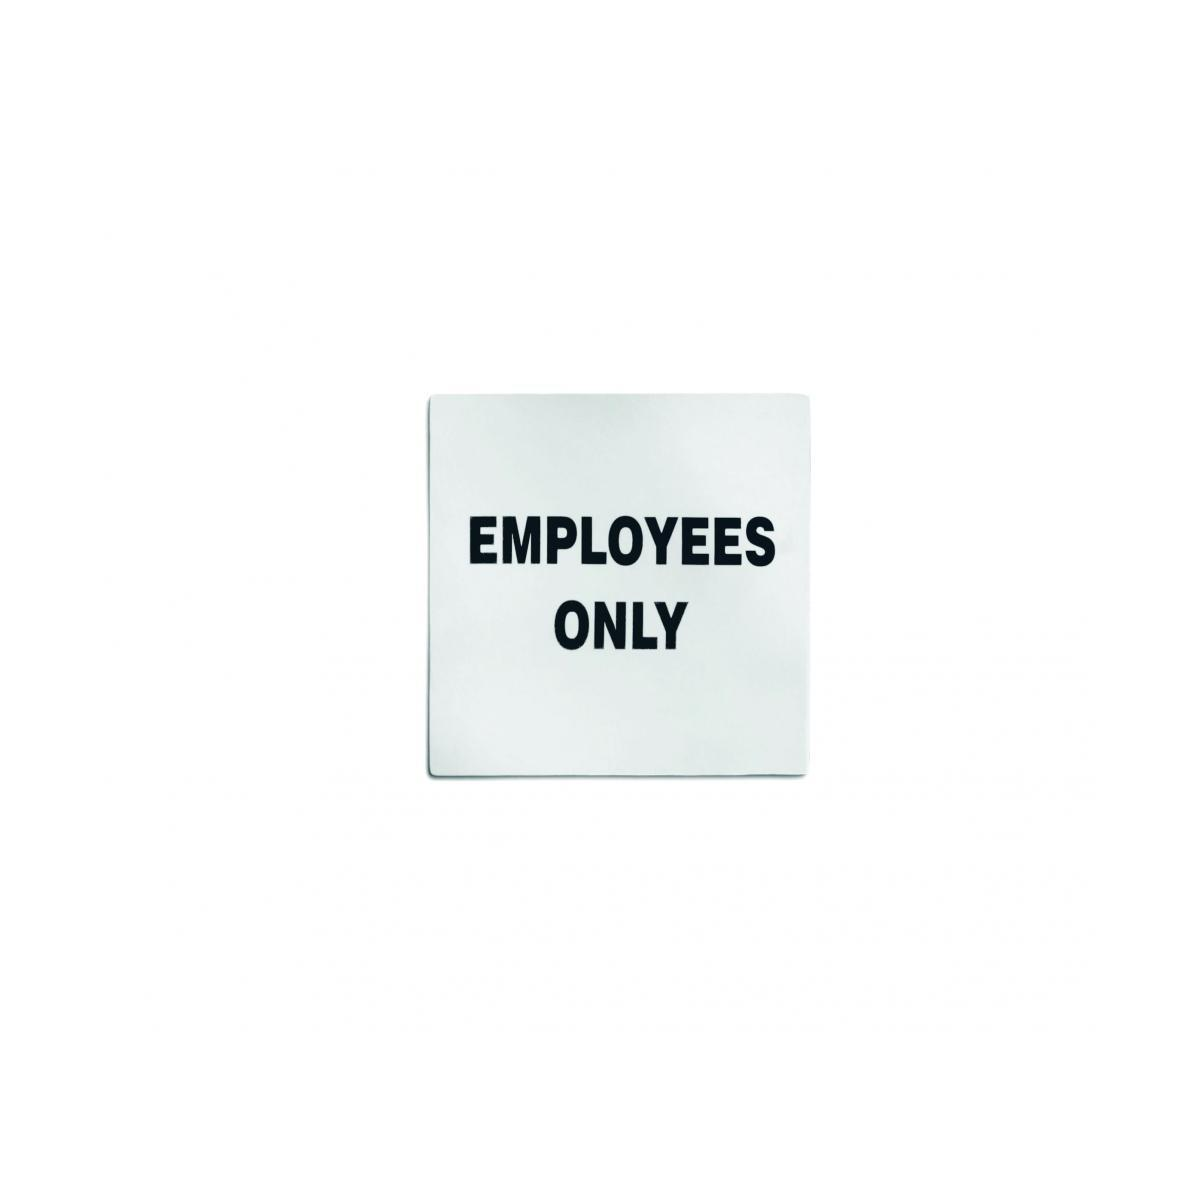 Employees Only Stainless Steel Sign